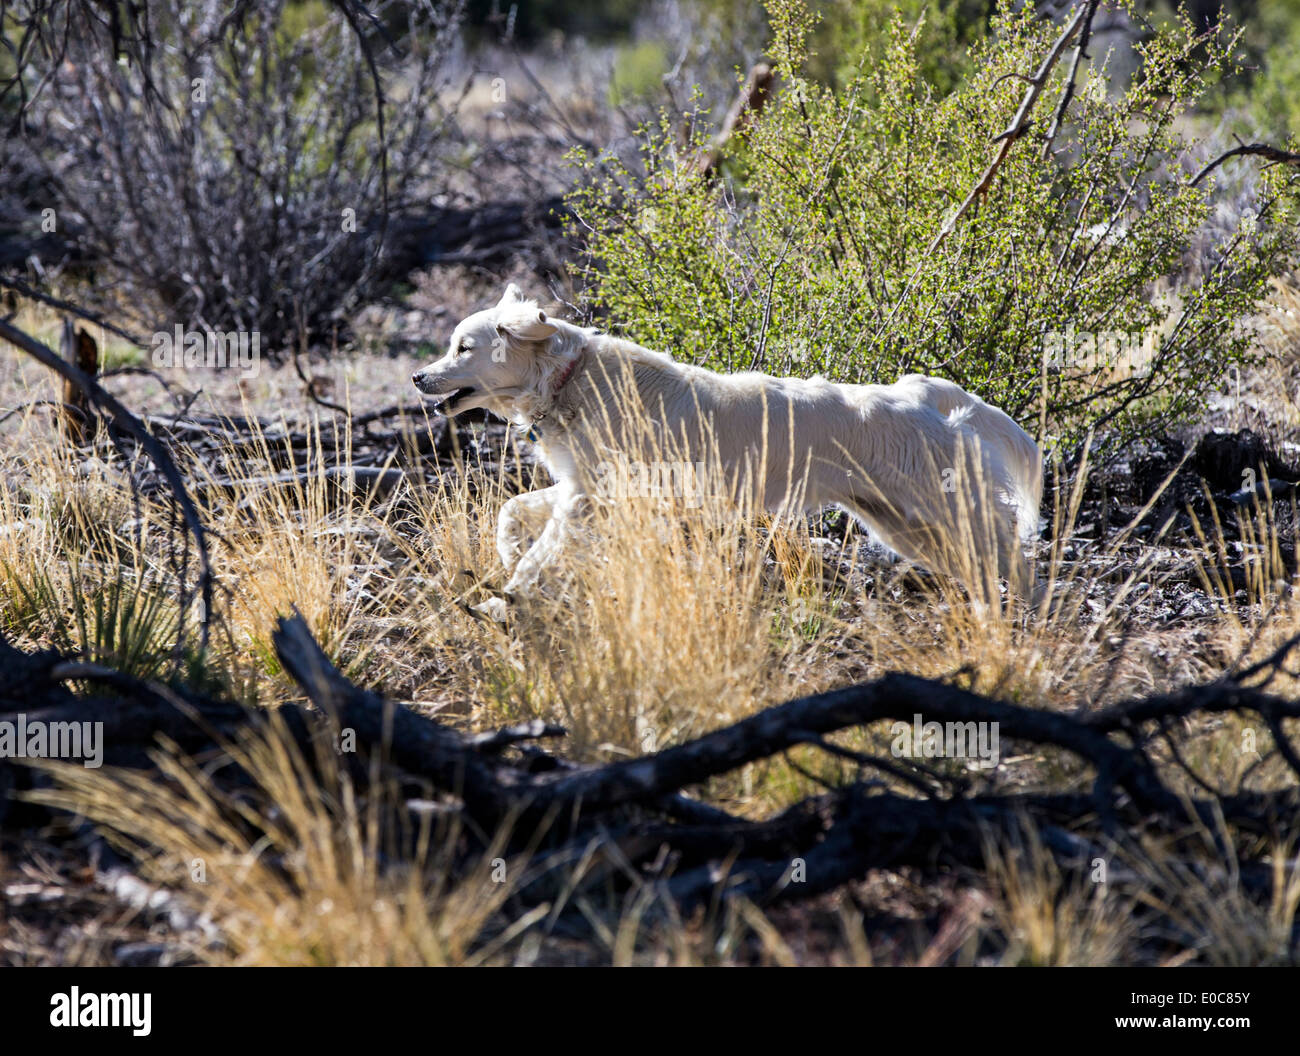 Platinum colored Golden Retriever dog running on a mountain trail - Stock Image